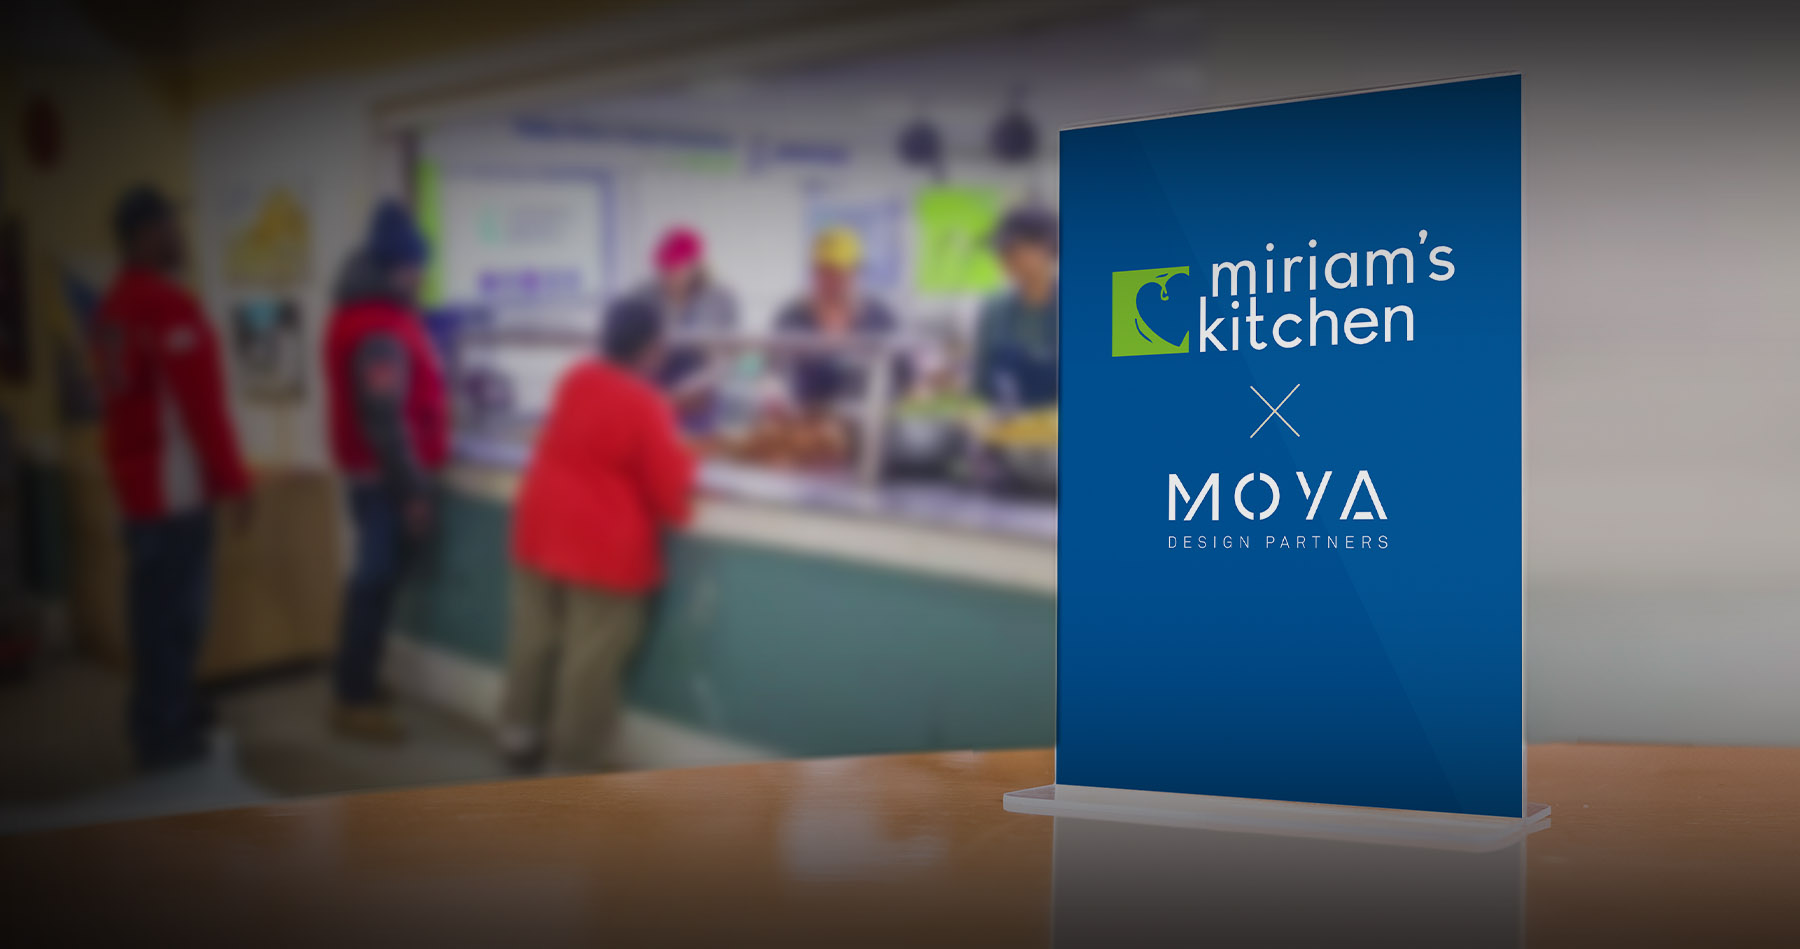 Moya Design Partners sponsors Miriam's Kitchen's 2020 More Than a Meal Campaign